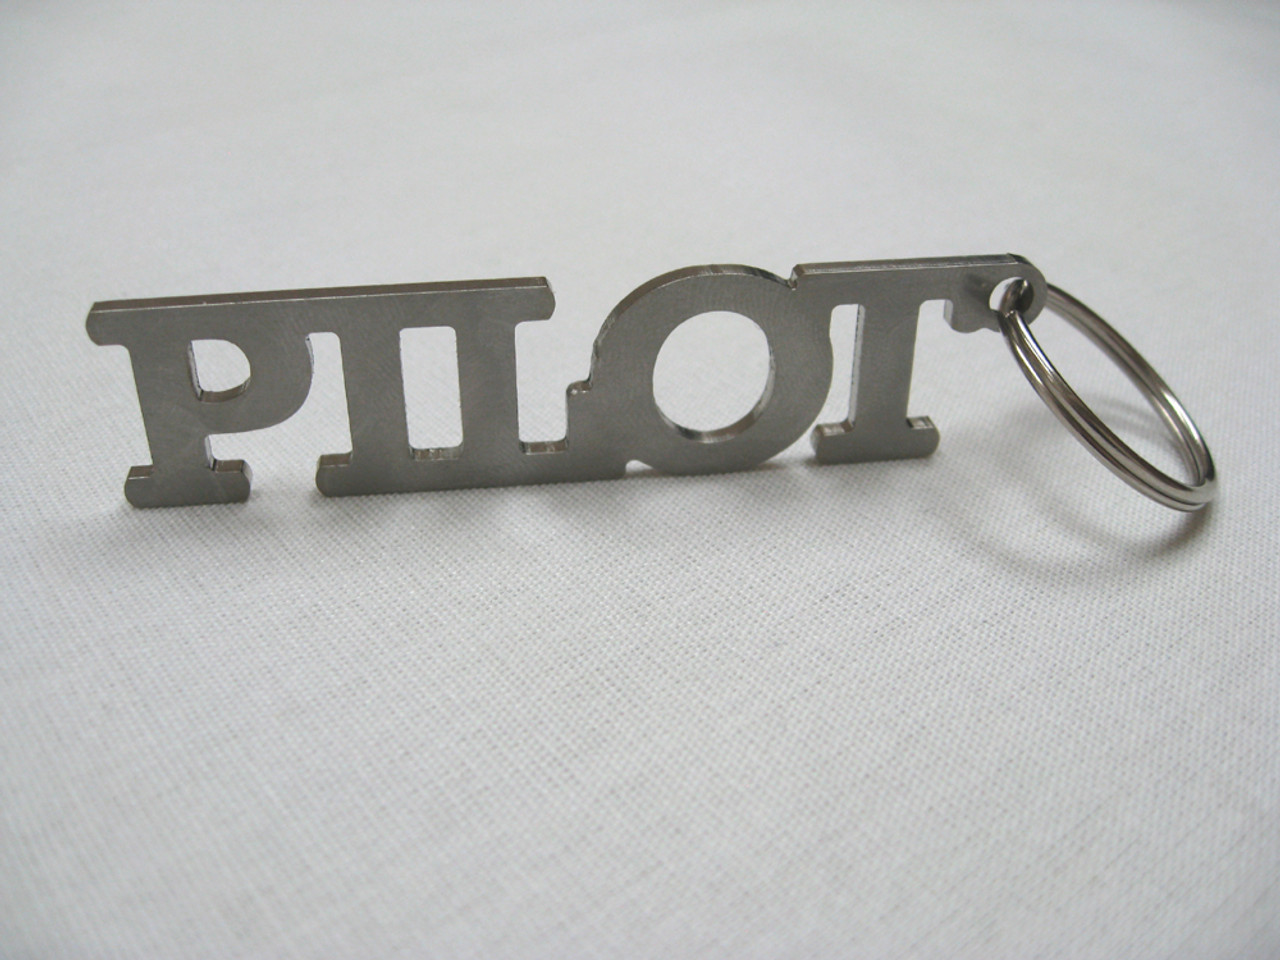 Pilot Stainless Steel Key Chain